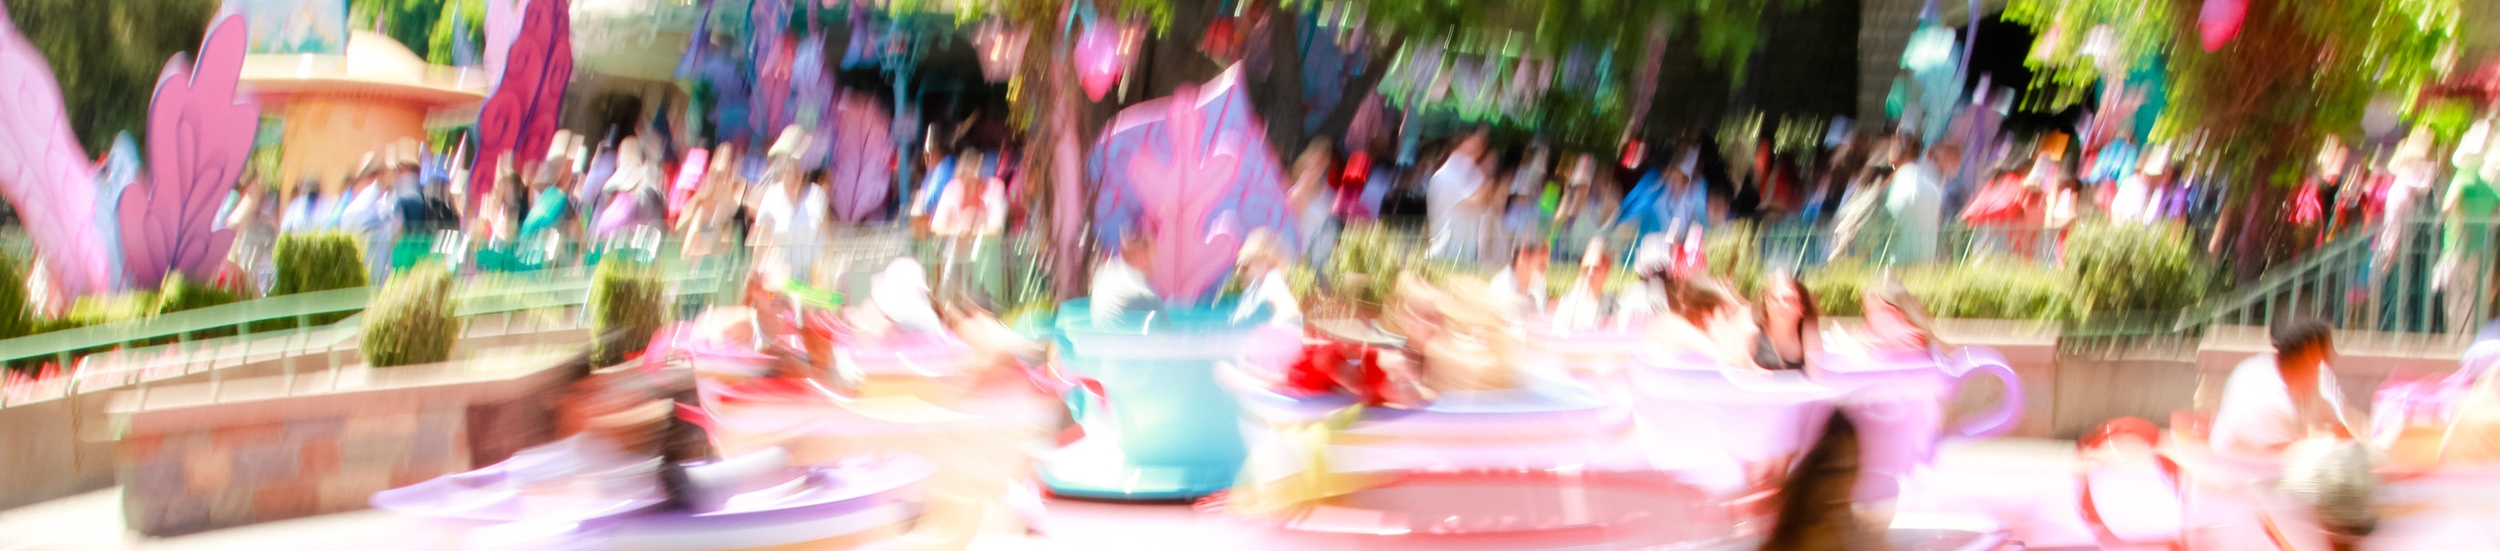 Alice in Wonderland's Tea Cup ride at Disneyland | Anaheim, California